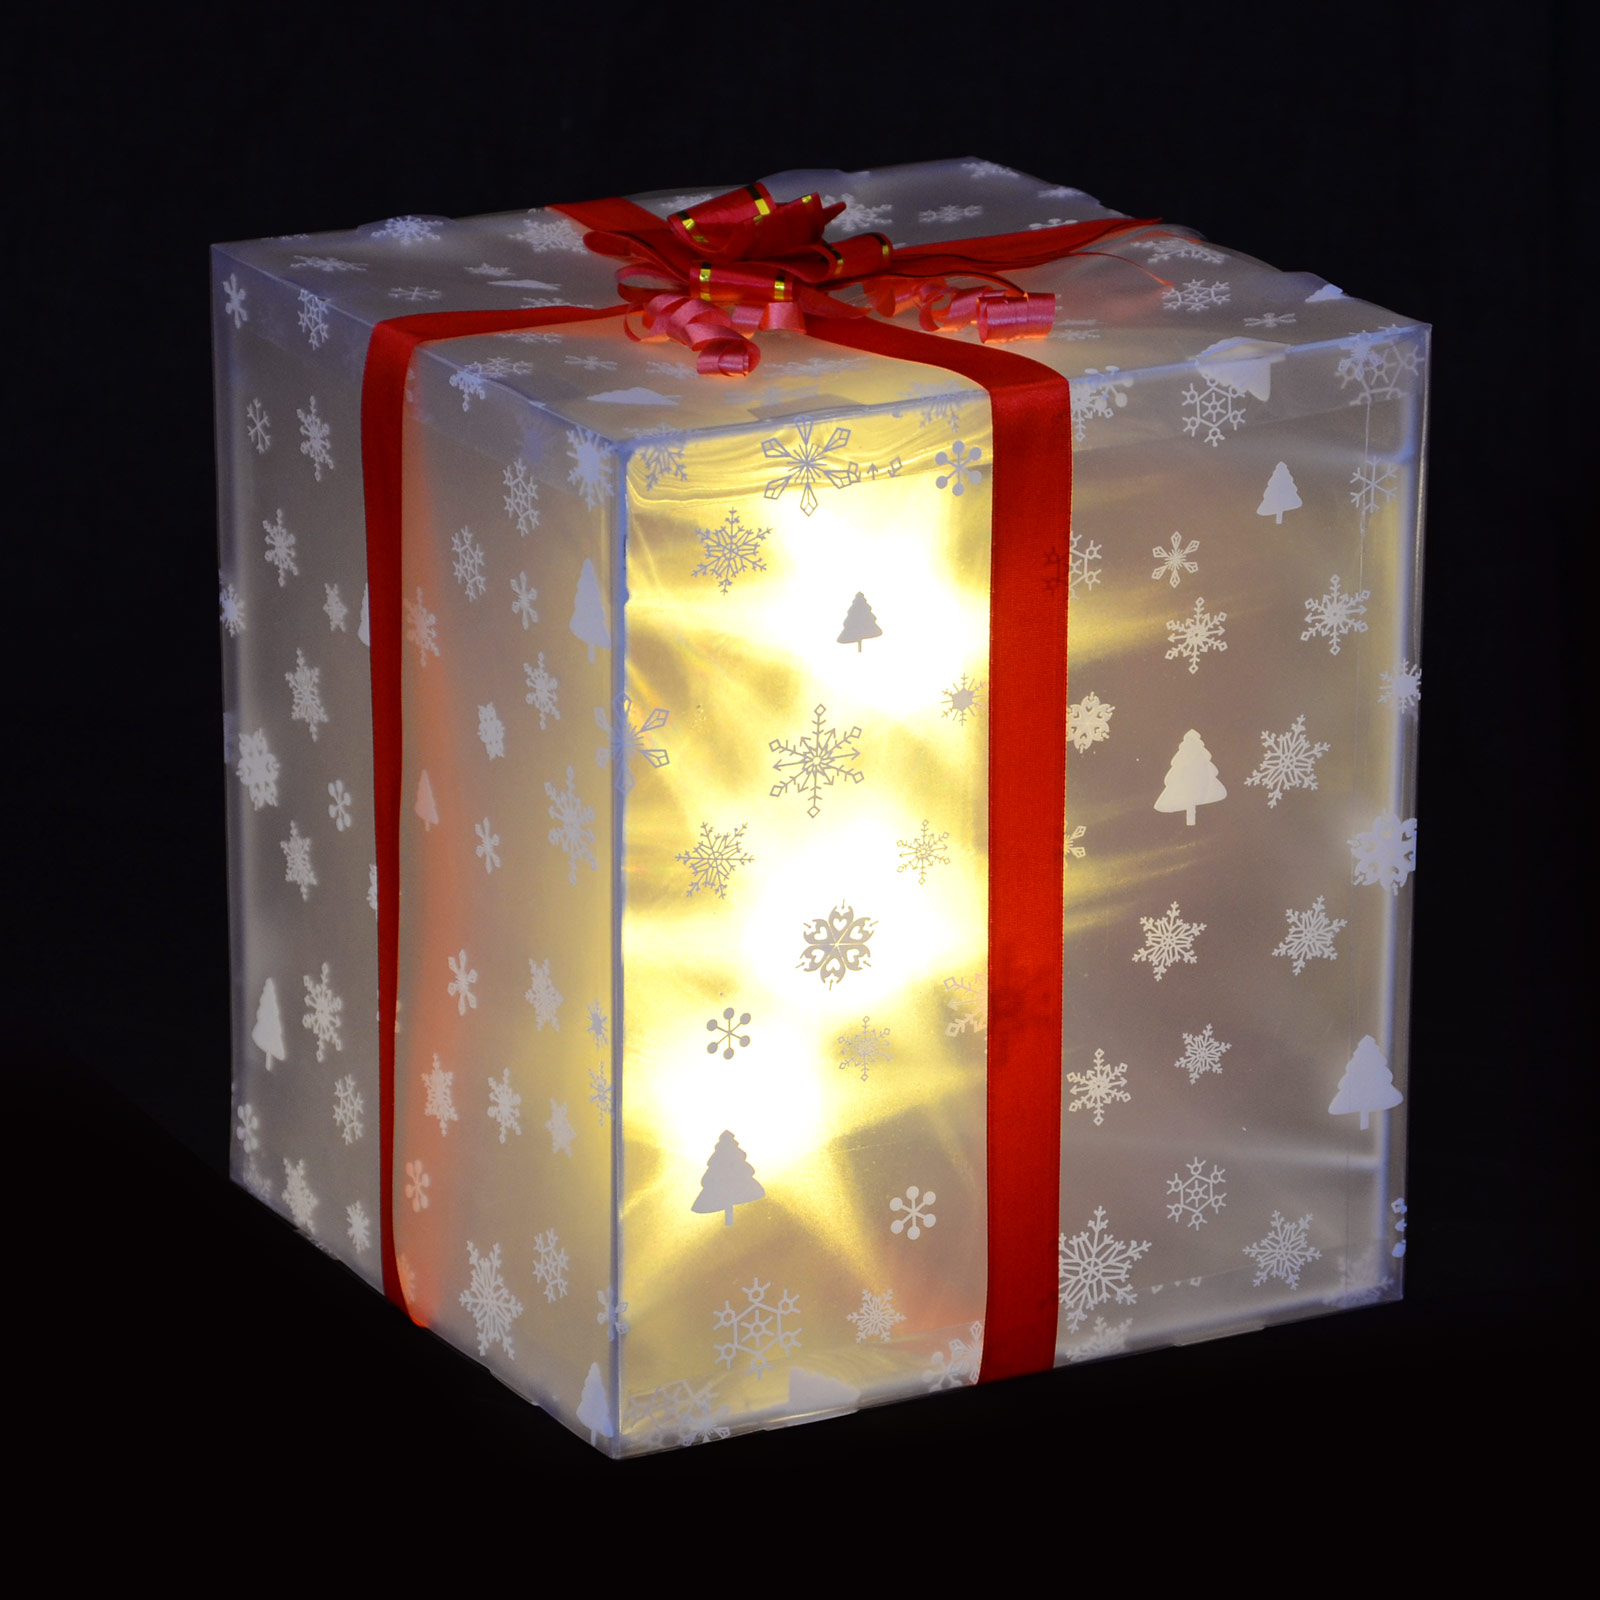 led battery operated christmas light up ribbon gift box. Black Bedroom Furniture Sets. Home Design Ideas